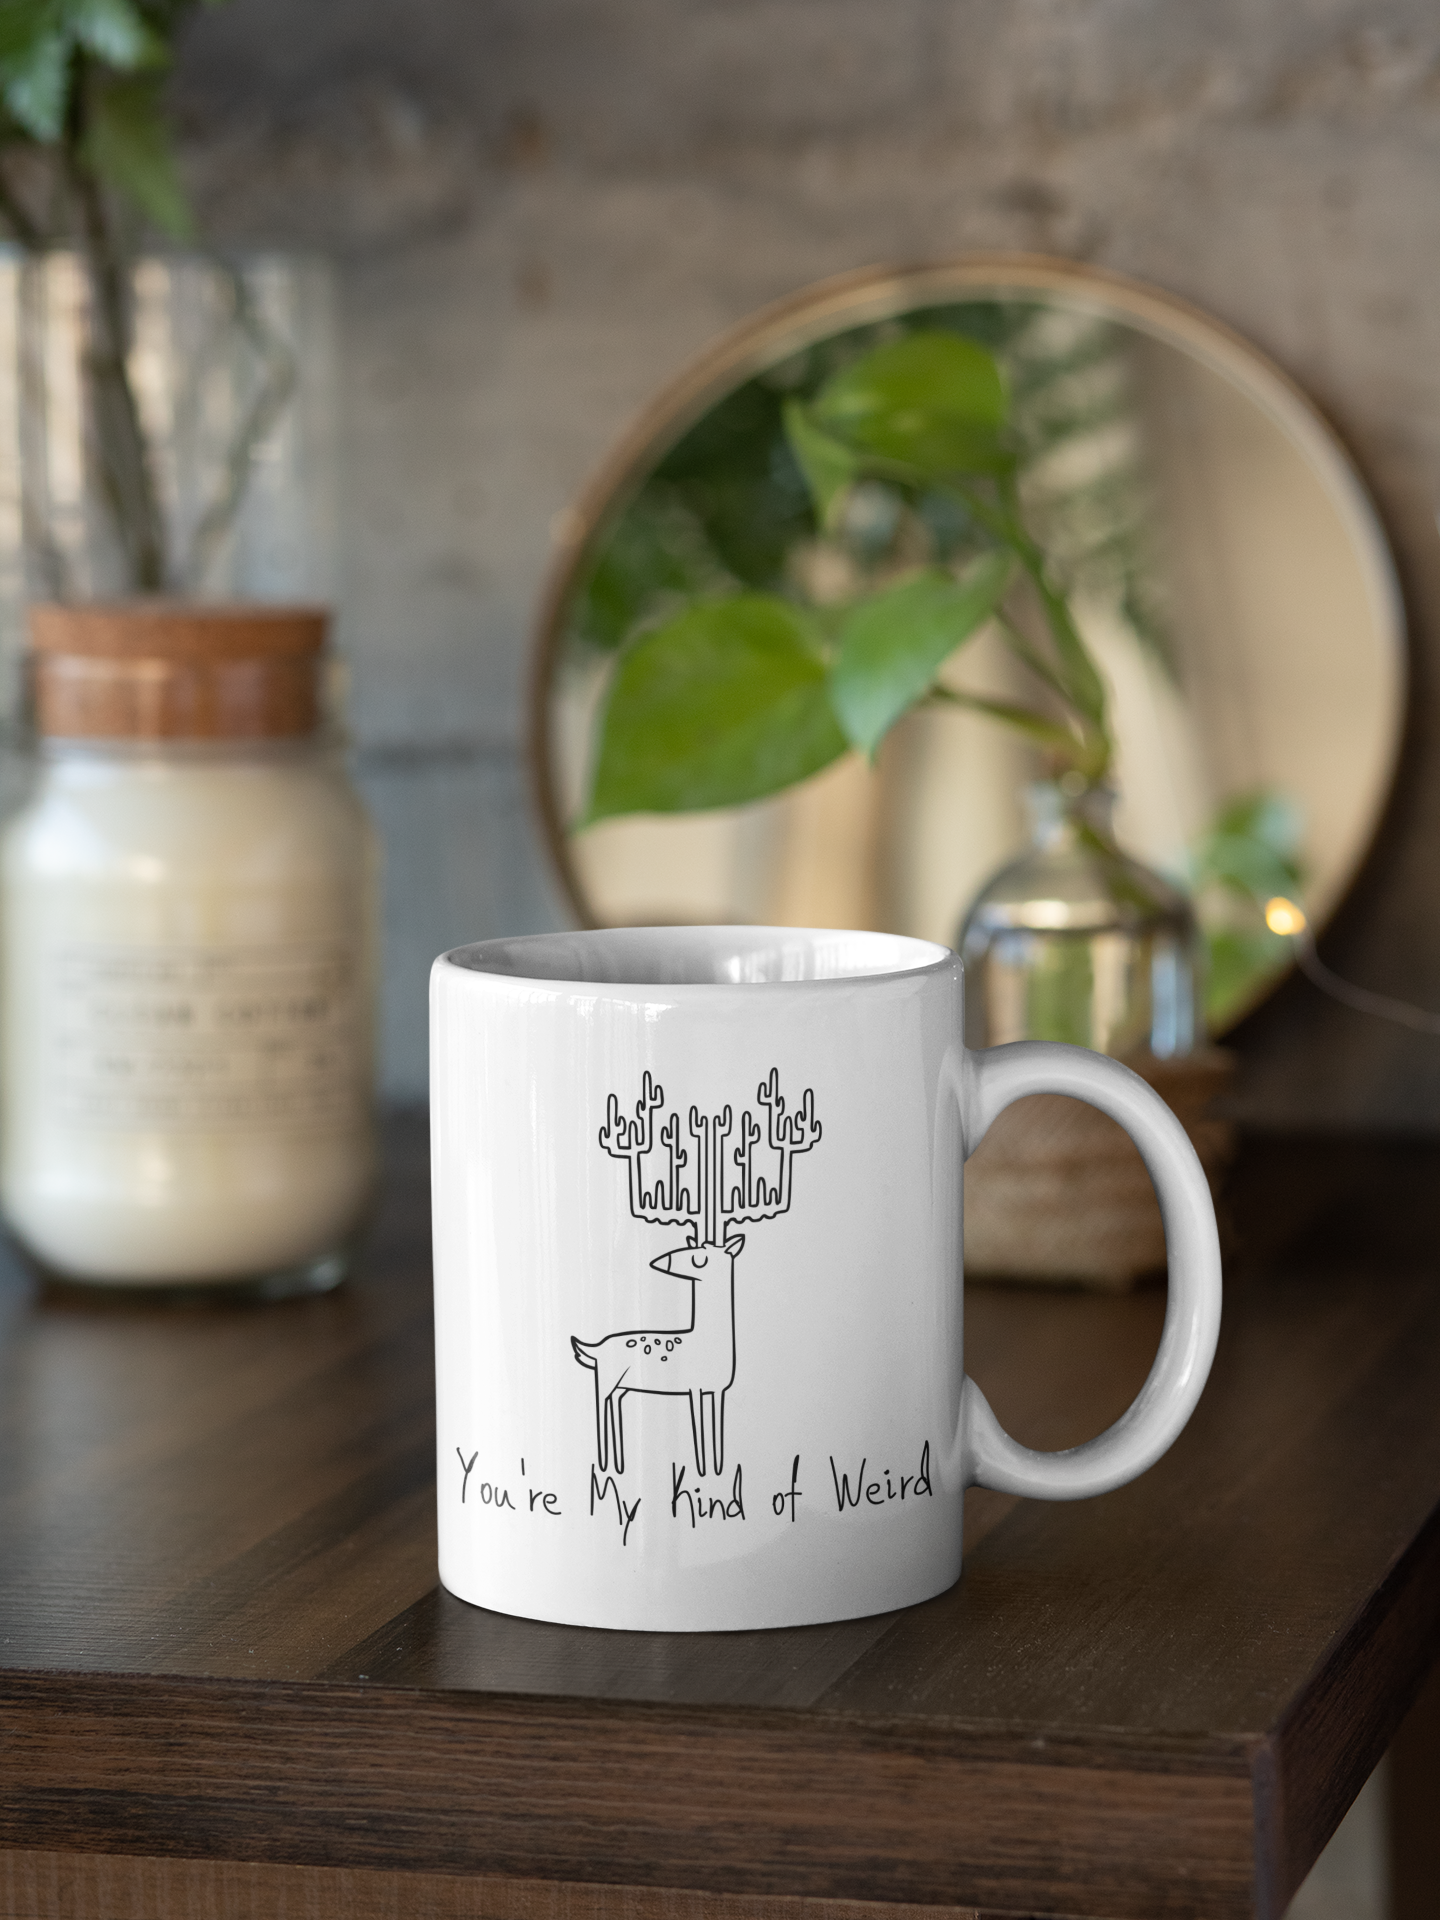 Pin On Unique Coffee Mugs Tea Cups For Gifting